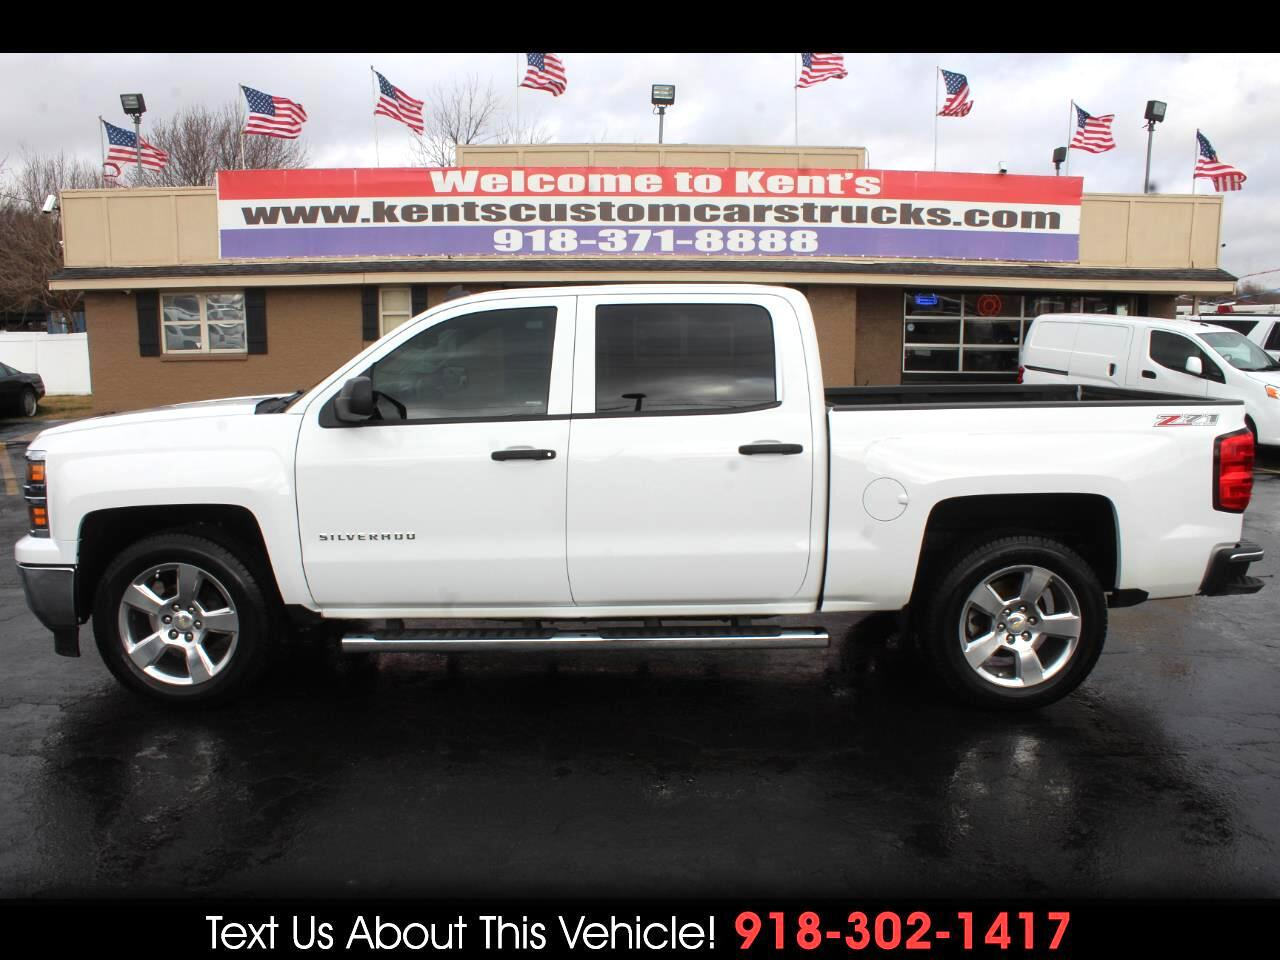 2014 Chevrolet Silverado 1500 LT Z71 Crew Cab 5.8 ft. Short Bed